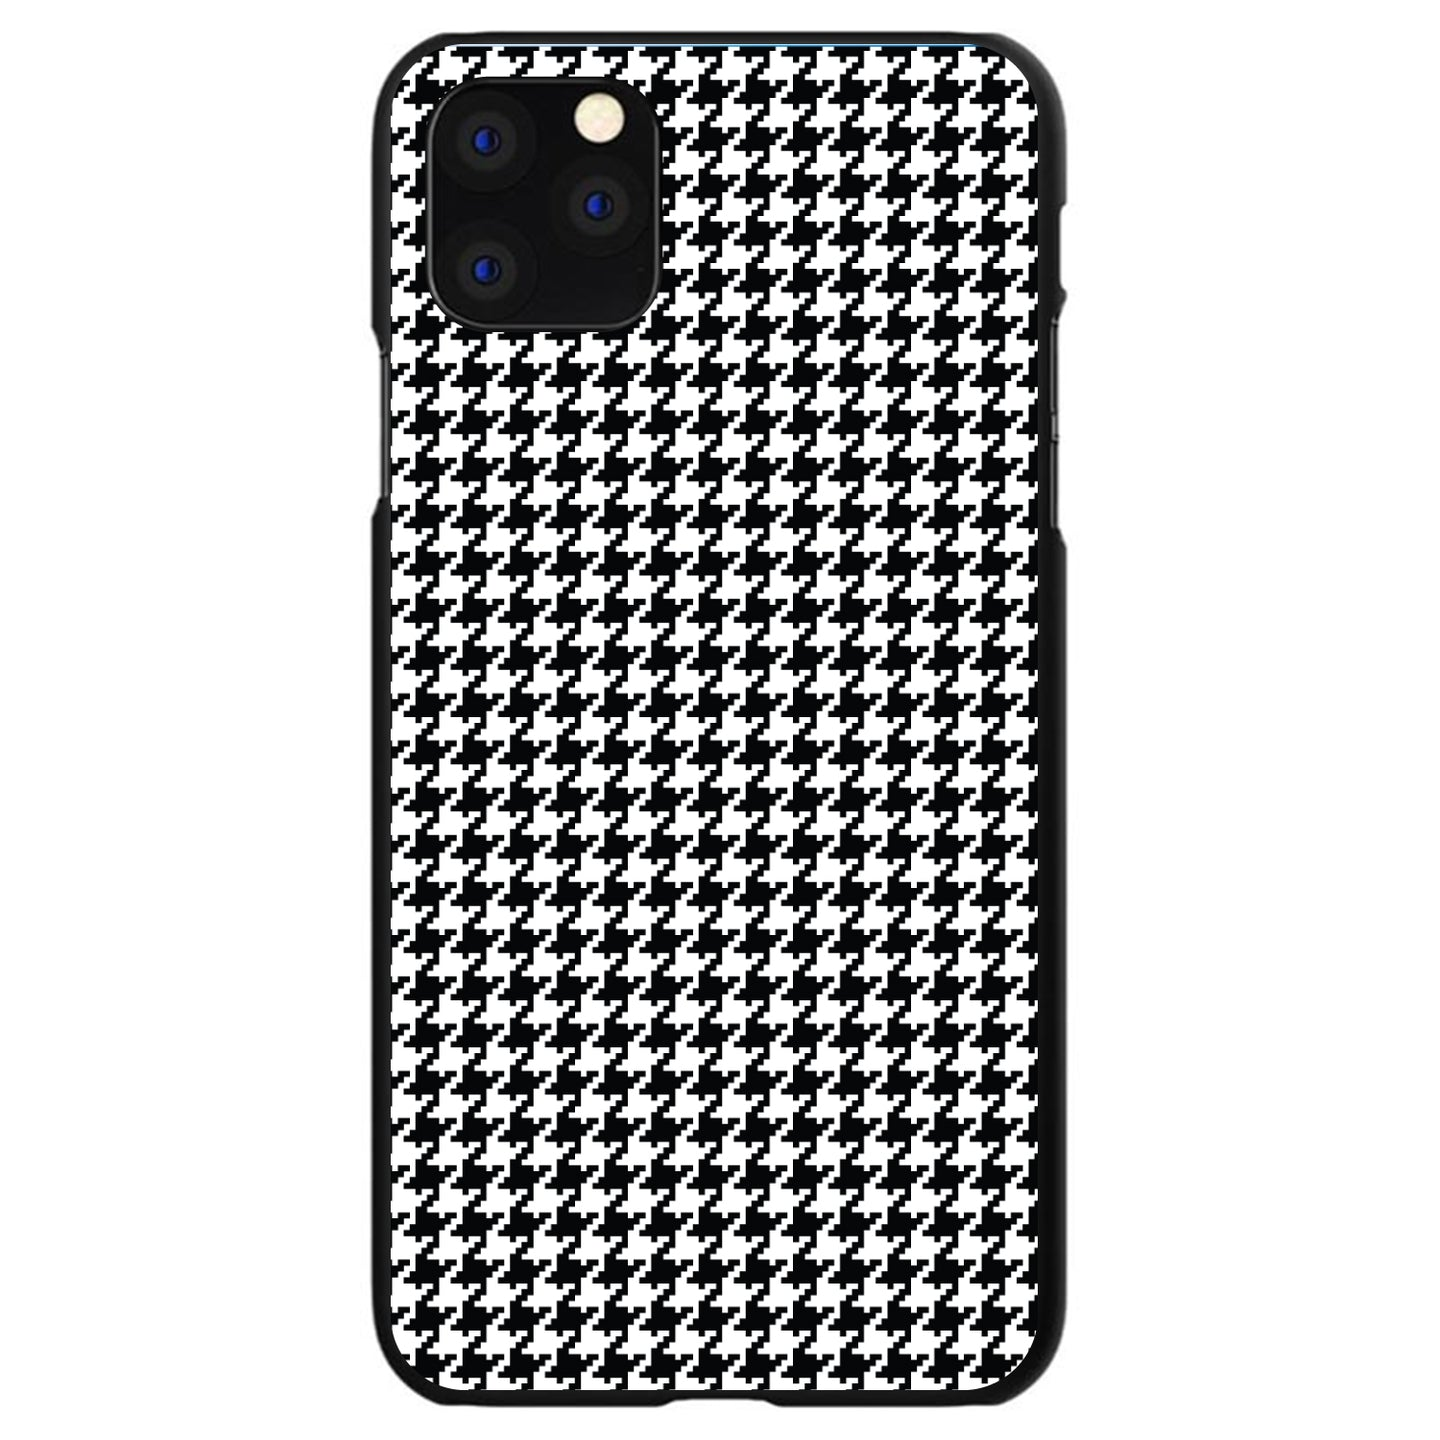 DistinctInk® Hard Plastic Snap-On Case for Apple iPhone - Black White Houndstooth Pattern